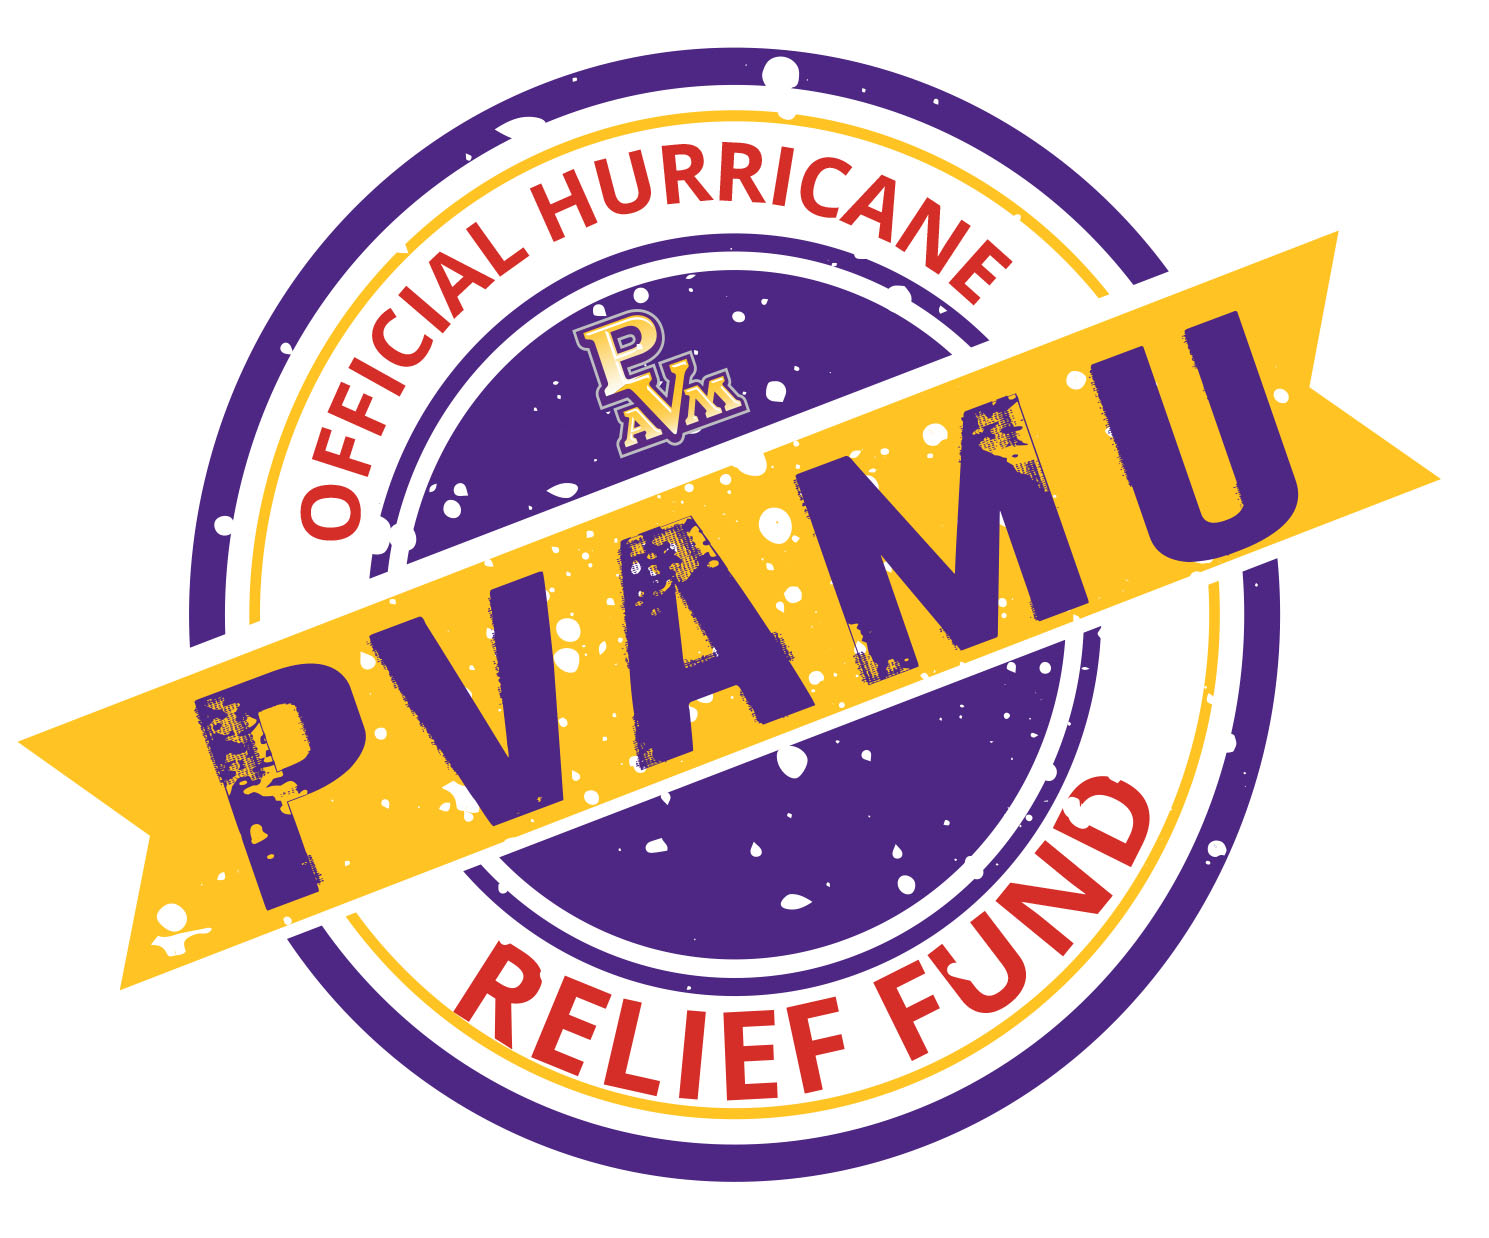 Hurricane Harvey Disaster Relief Fund